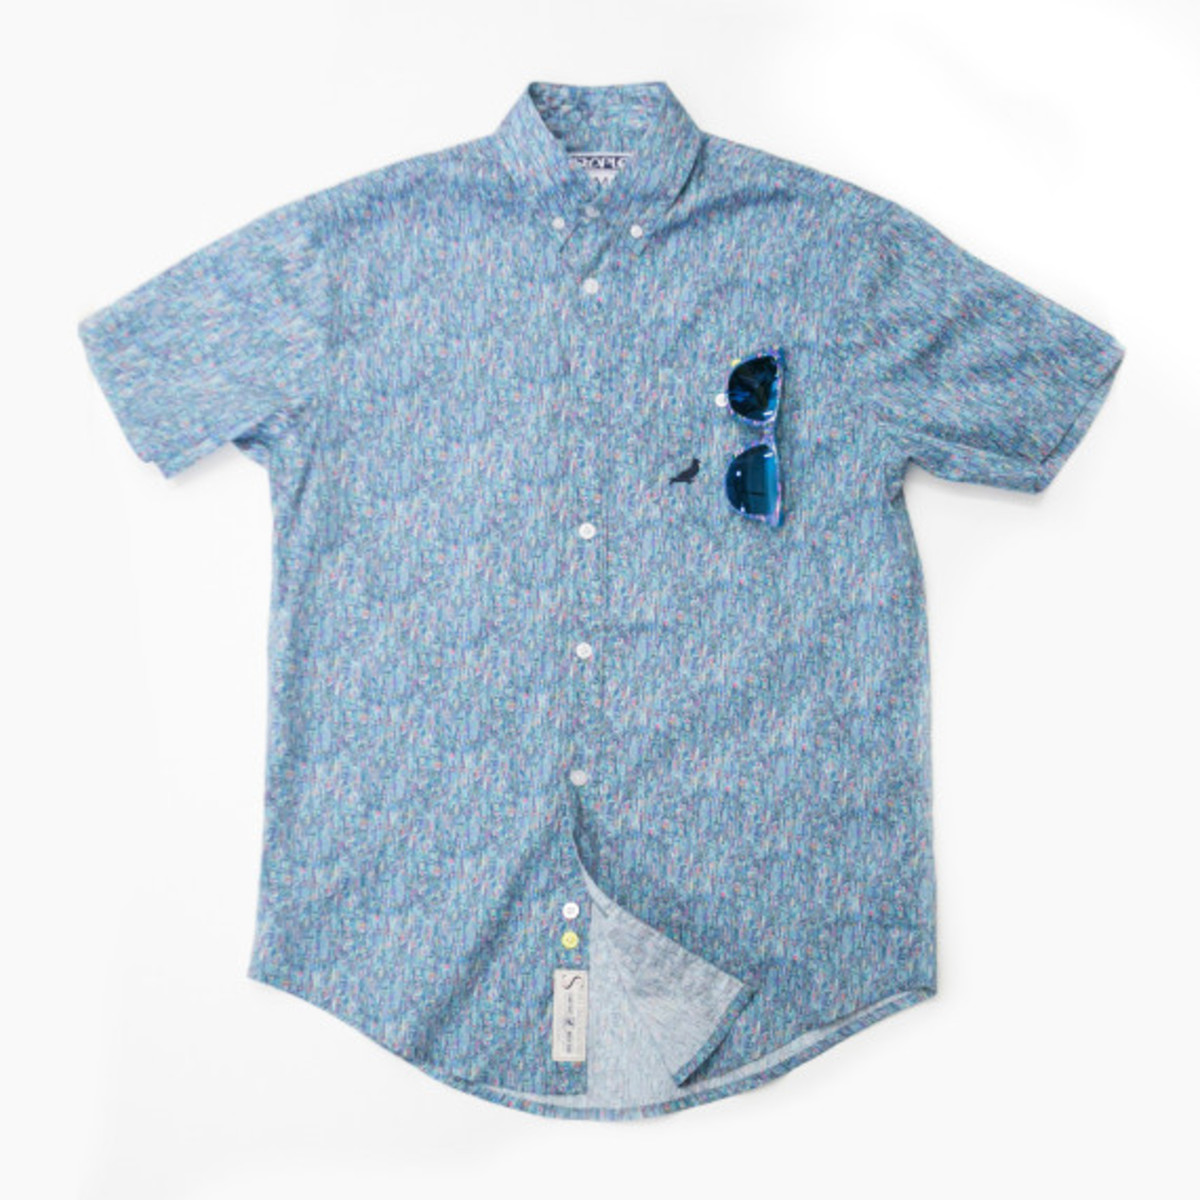 staple-liberty-capsule-collection-09